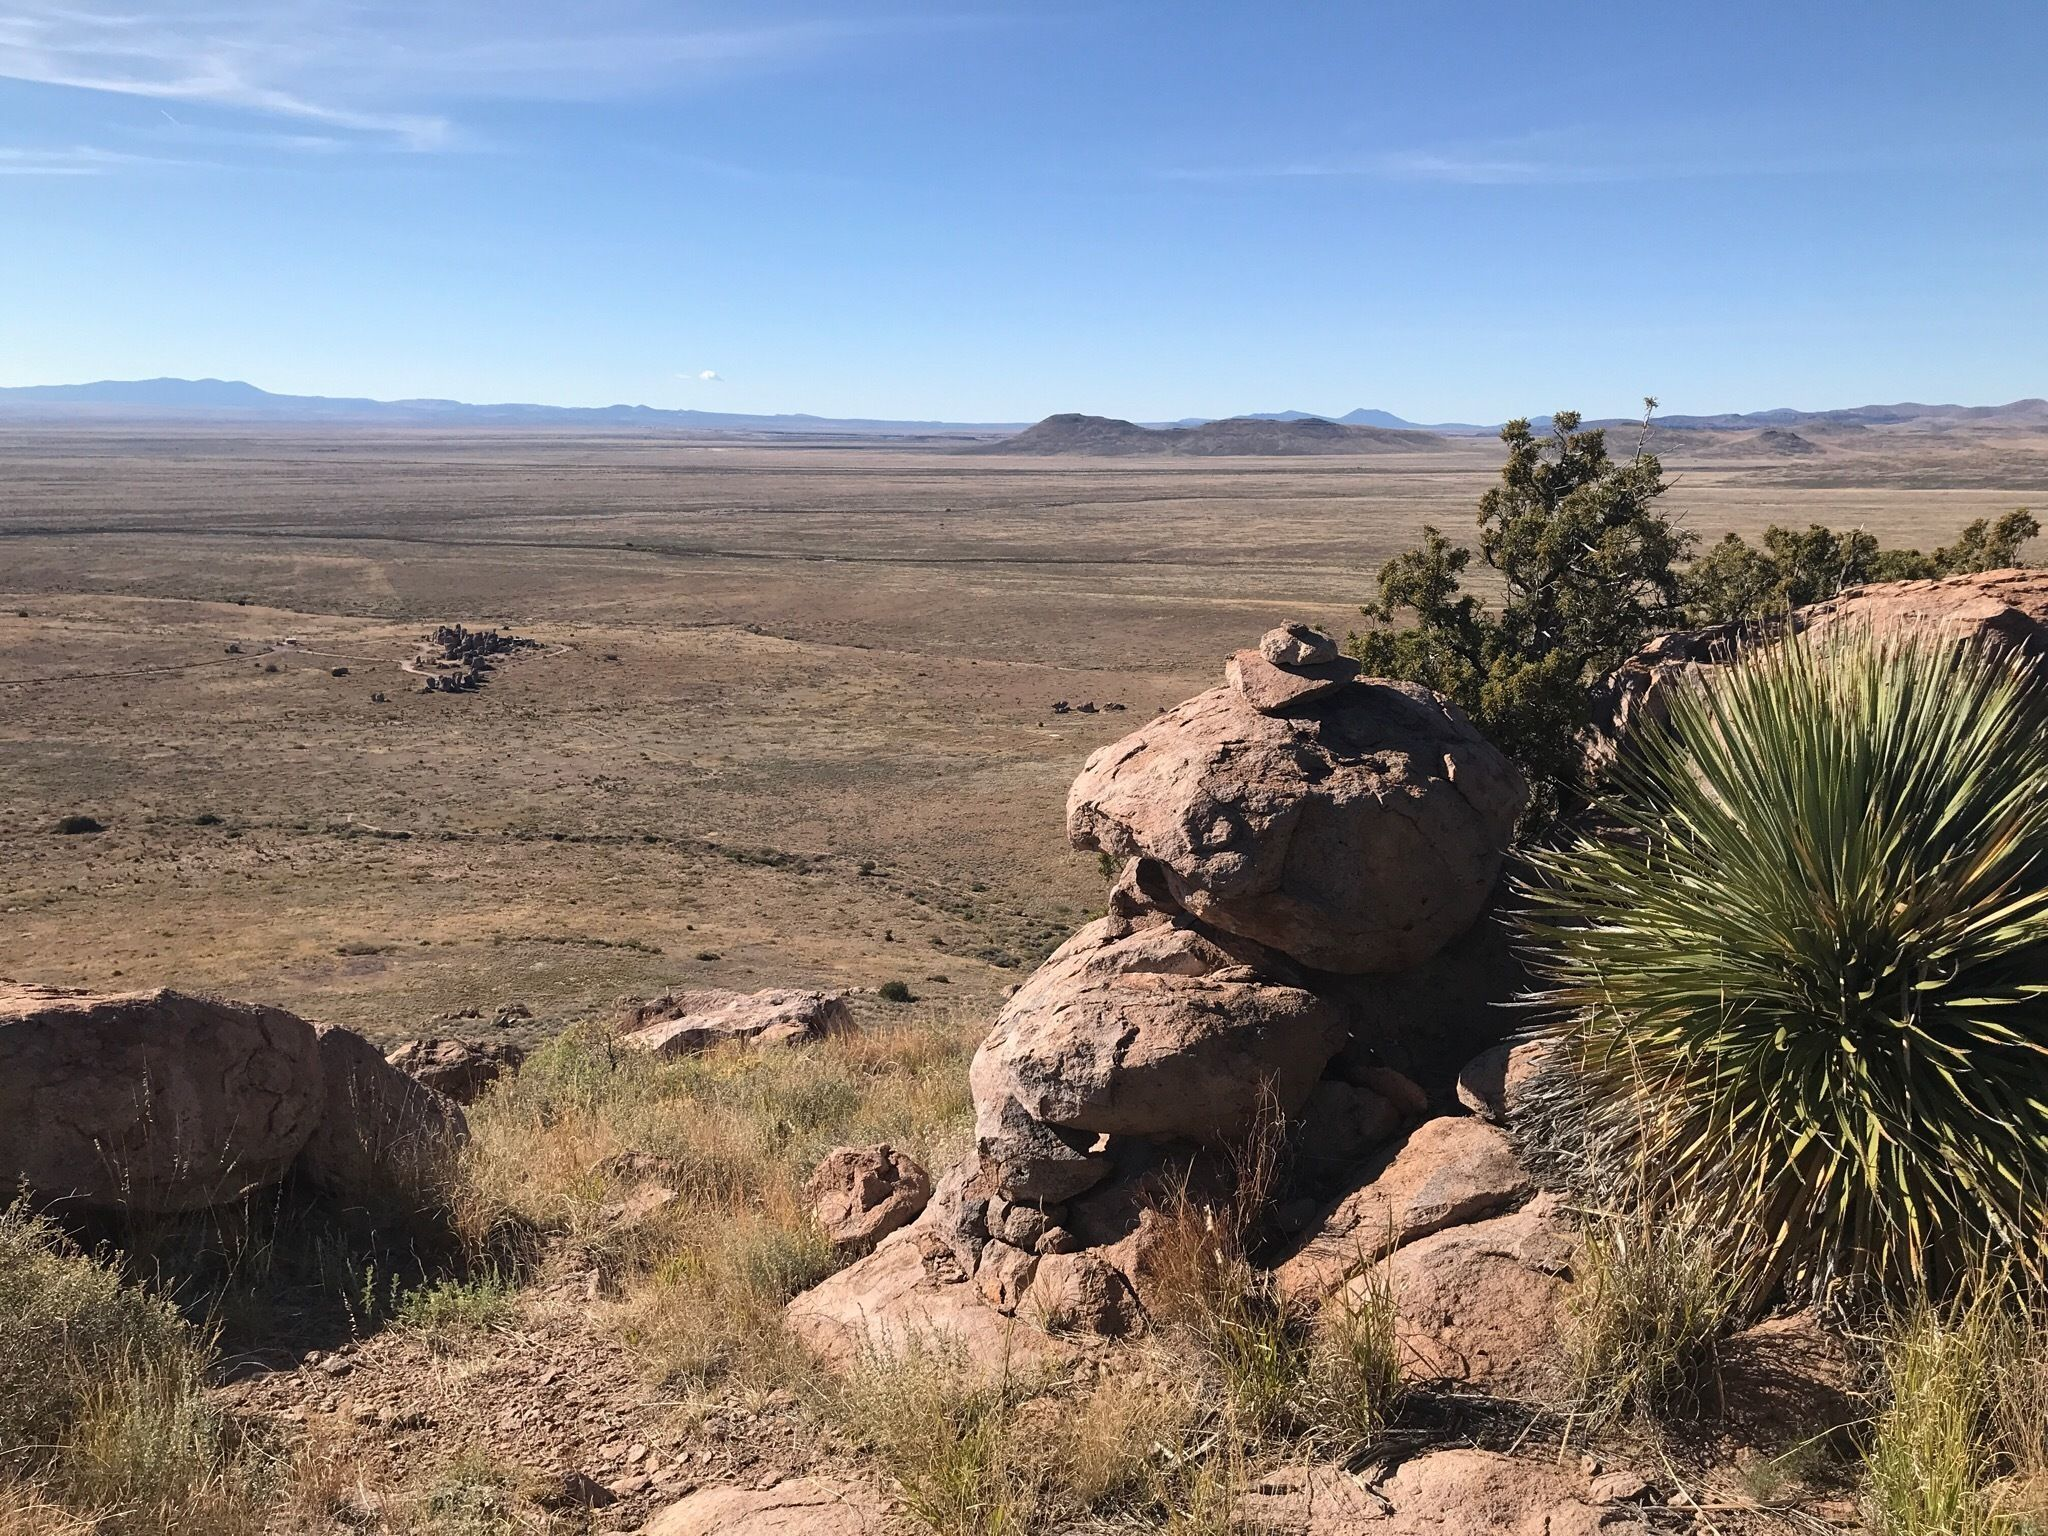 Explore Over 8 Miles Of Hiking Trails At City Of Rocks State Park in New Mexico